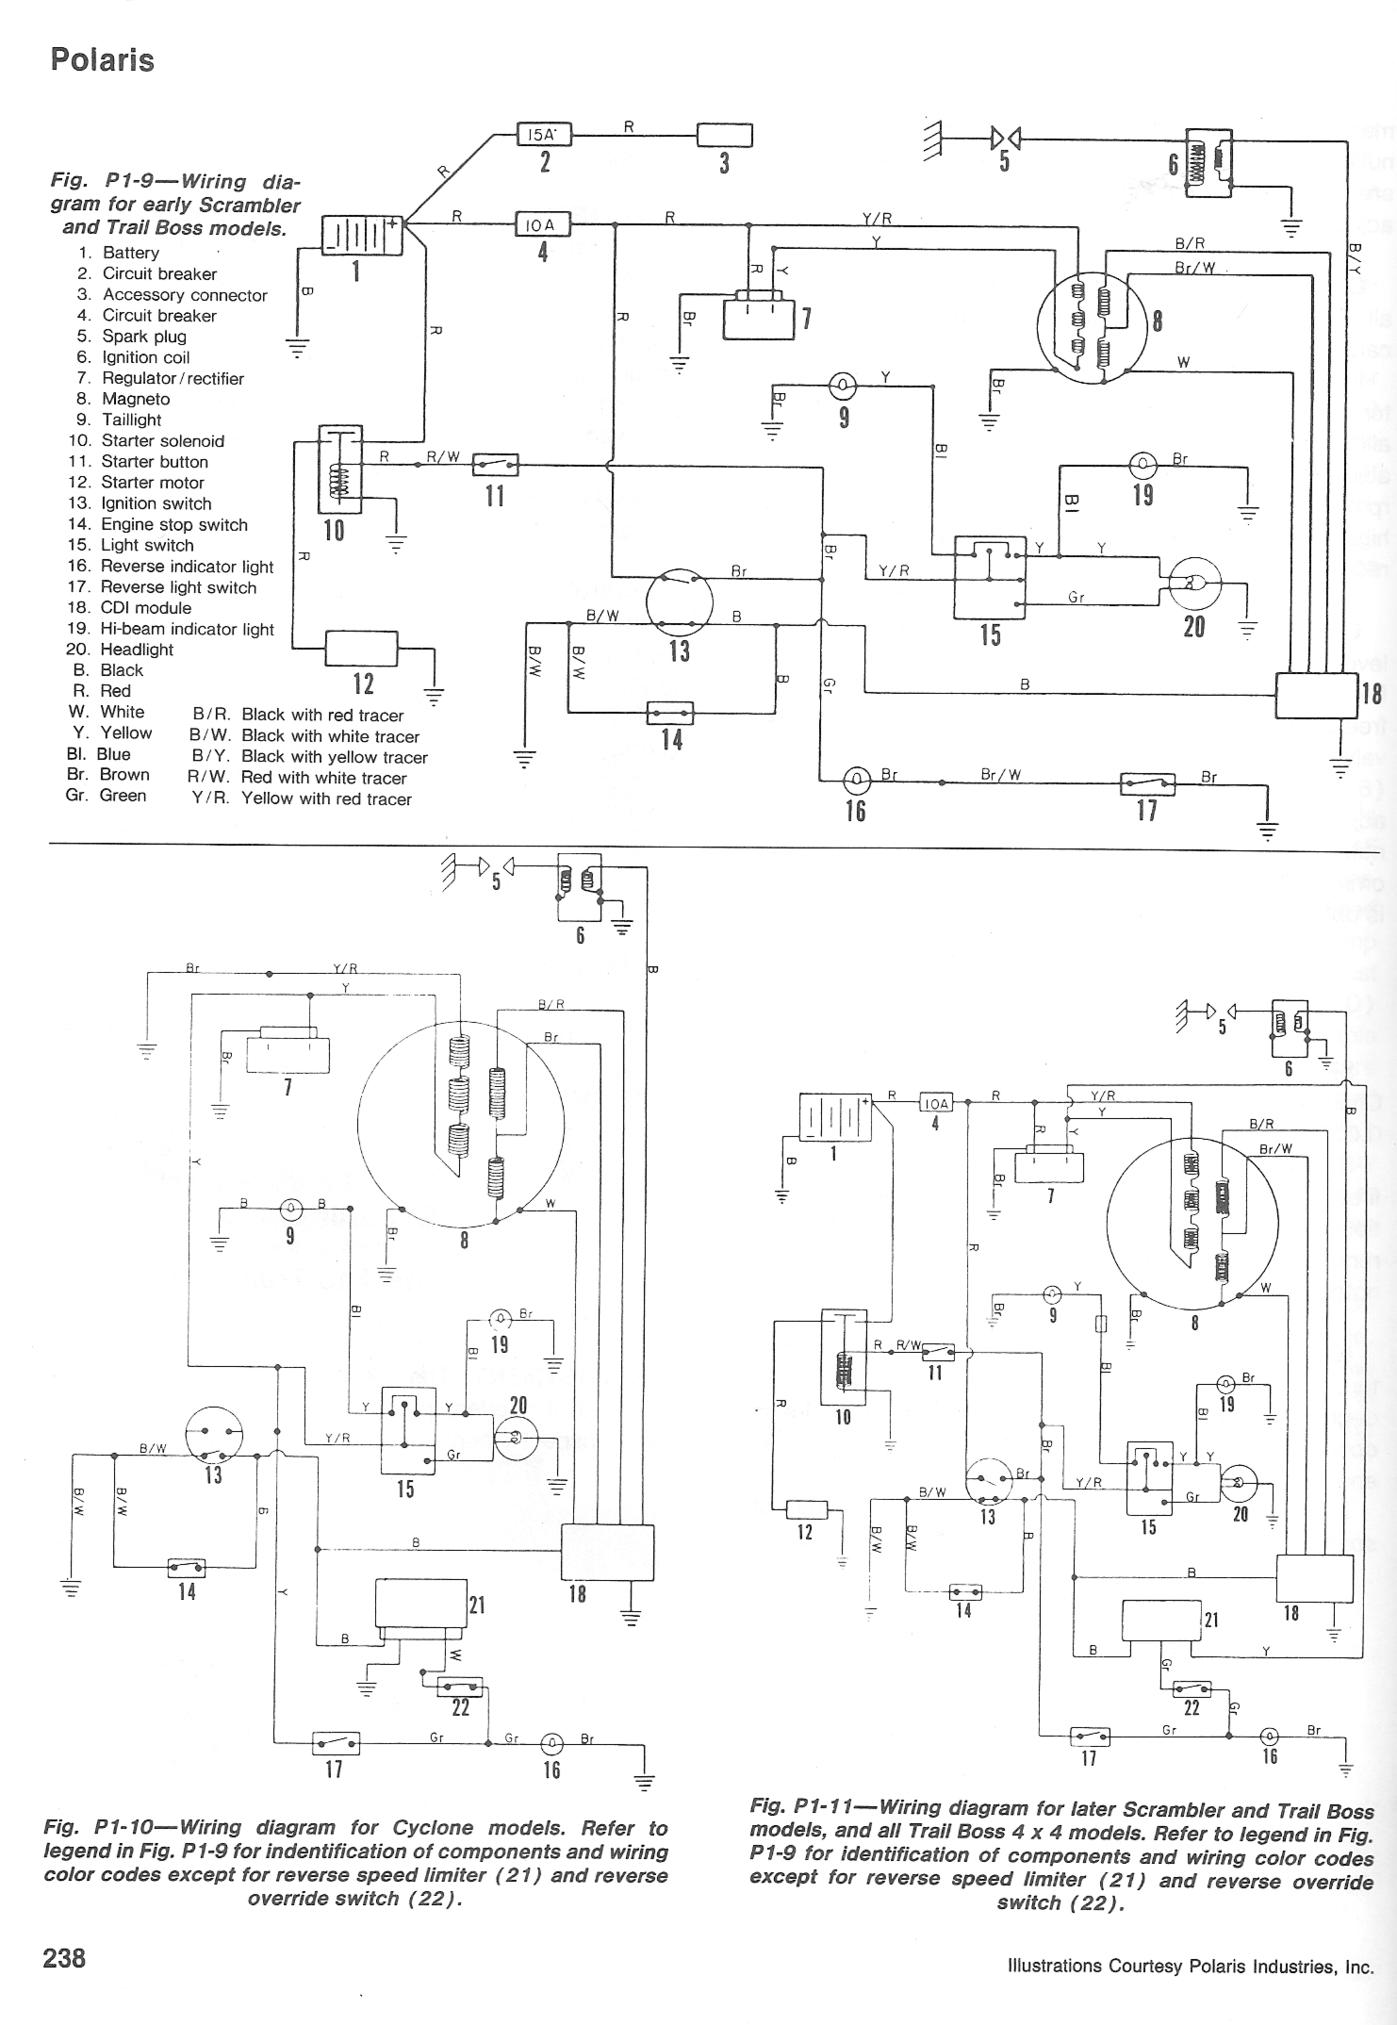 1987 Polaris Trail Boss Wiring Diagram Seniorsclub It Wires White Wires White Seniorsclub It